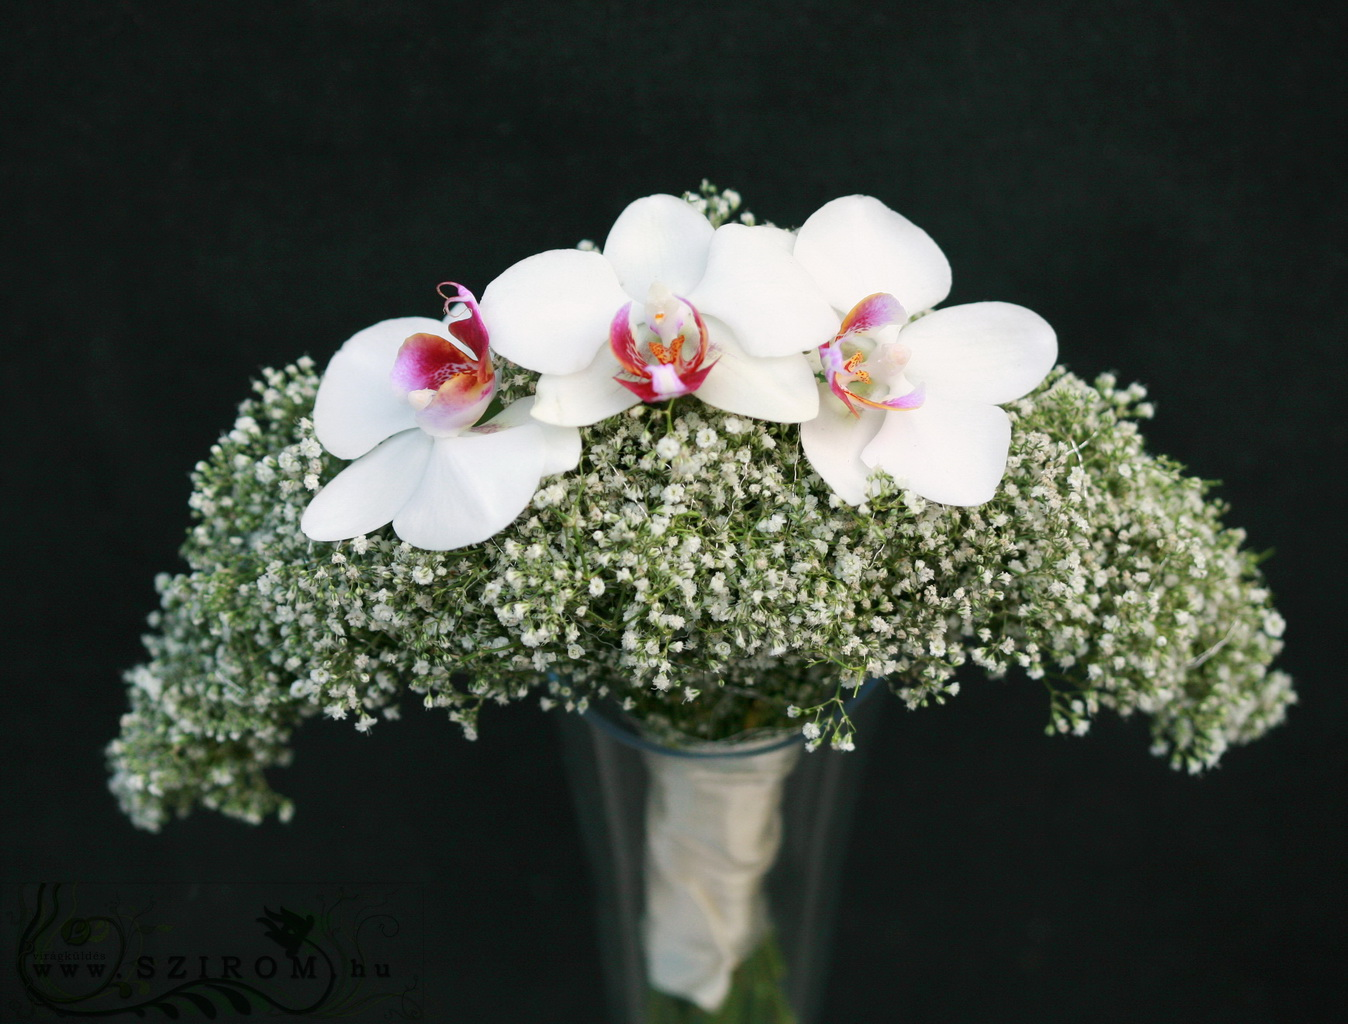 bridal bouquet (baby's beath, phalaenopsis orchid, white)